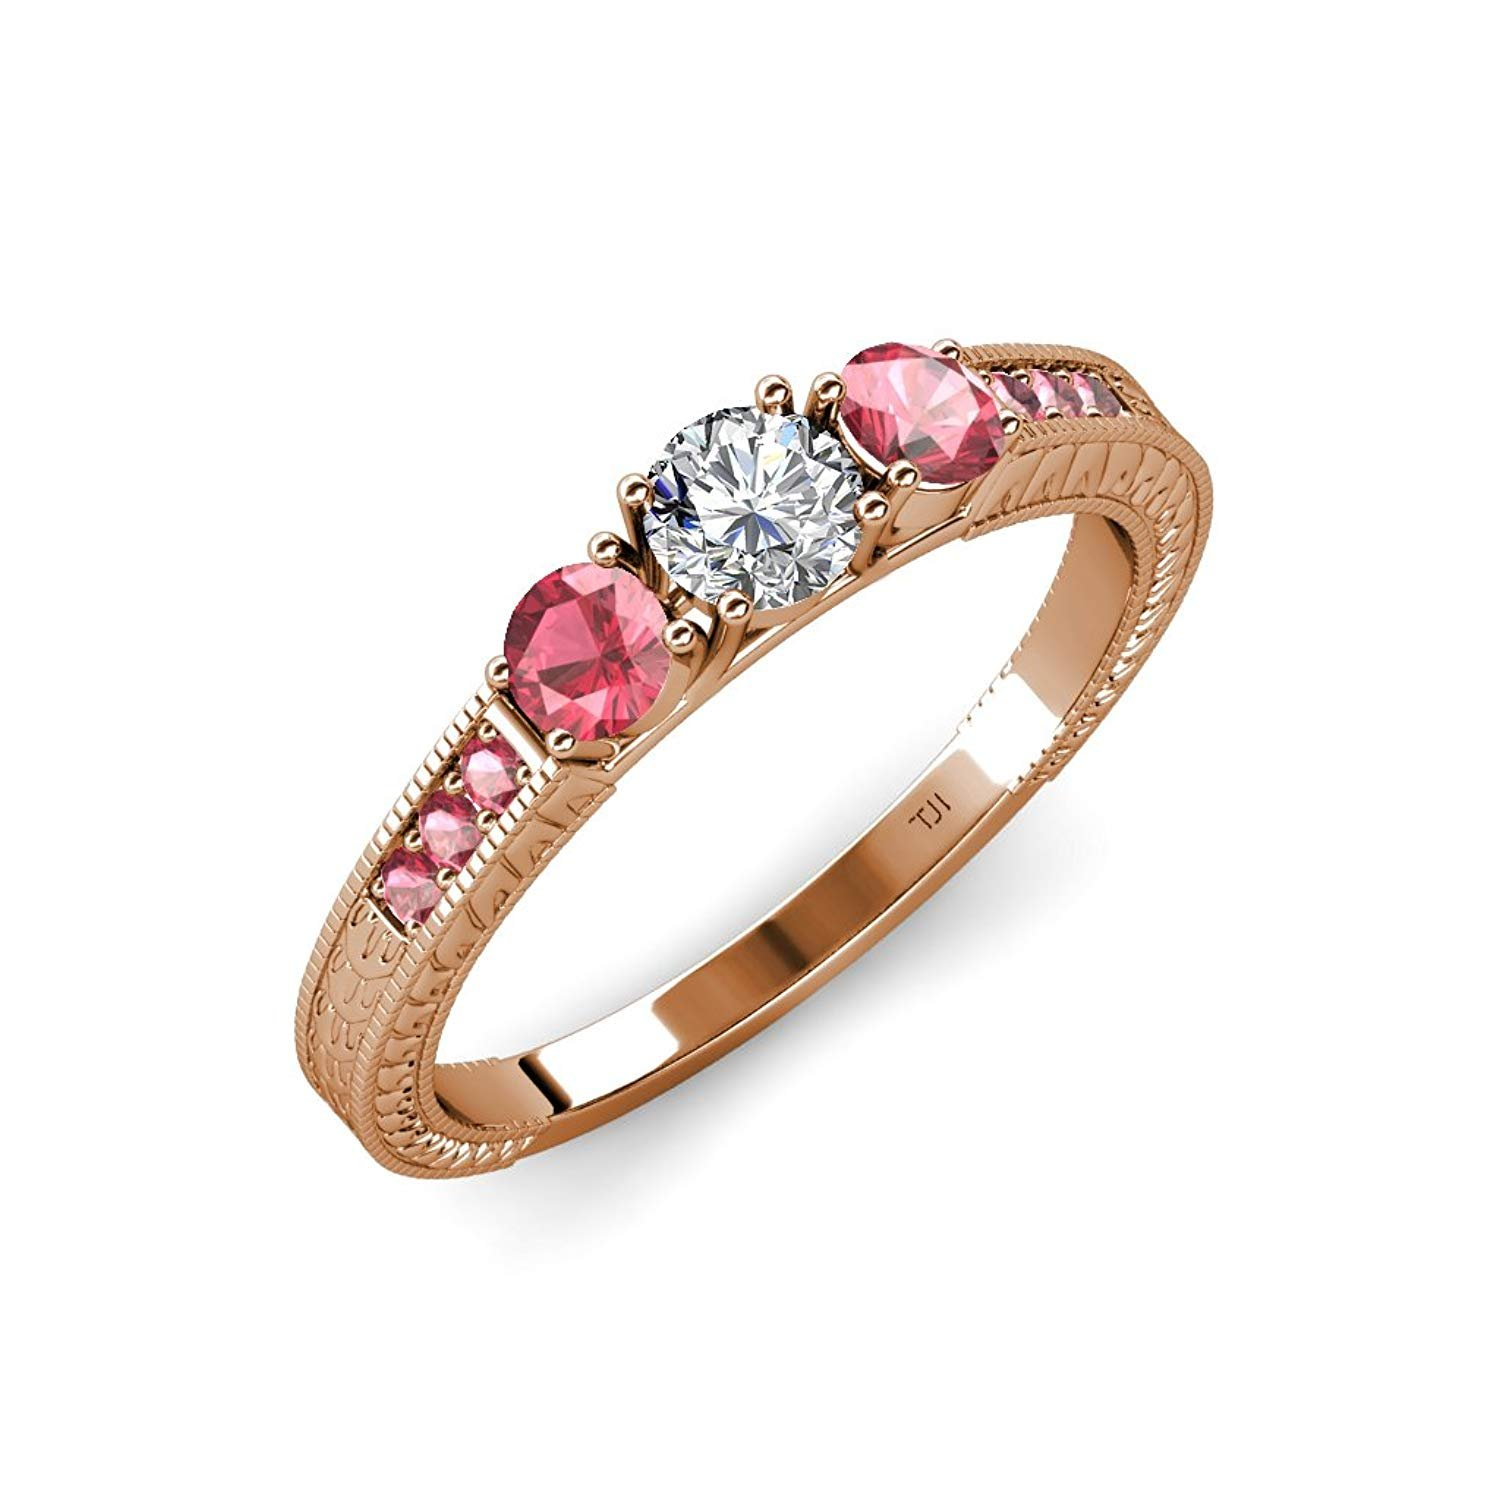 Diamond and Pink Tourmaline 3 Stone Ring with Side Pink Tourmaline 0.83 ct tw in 14K Rose Gold.size 7.0 by TriJewels